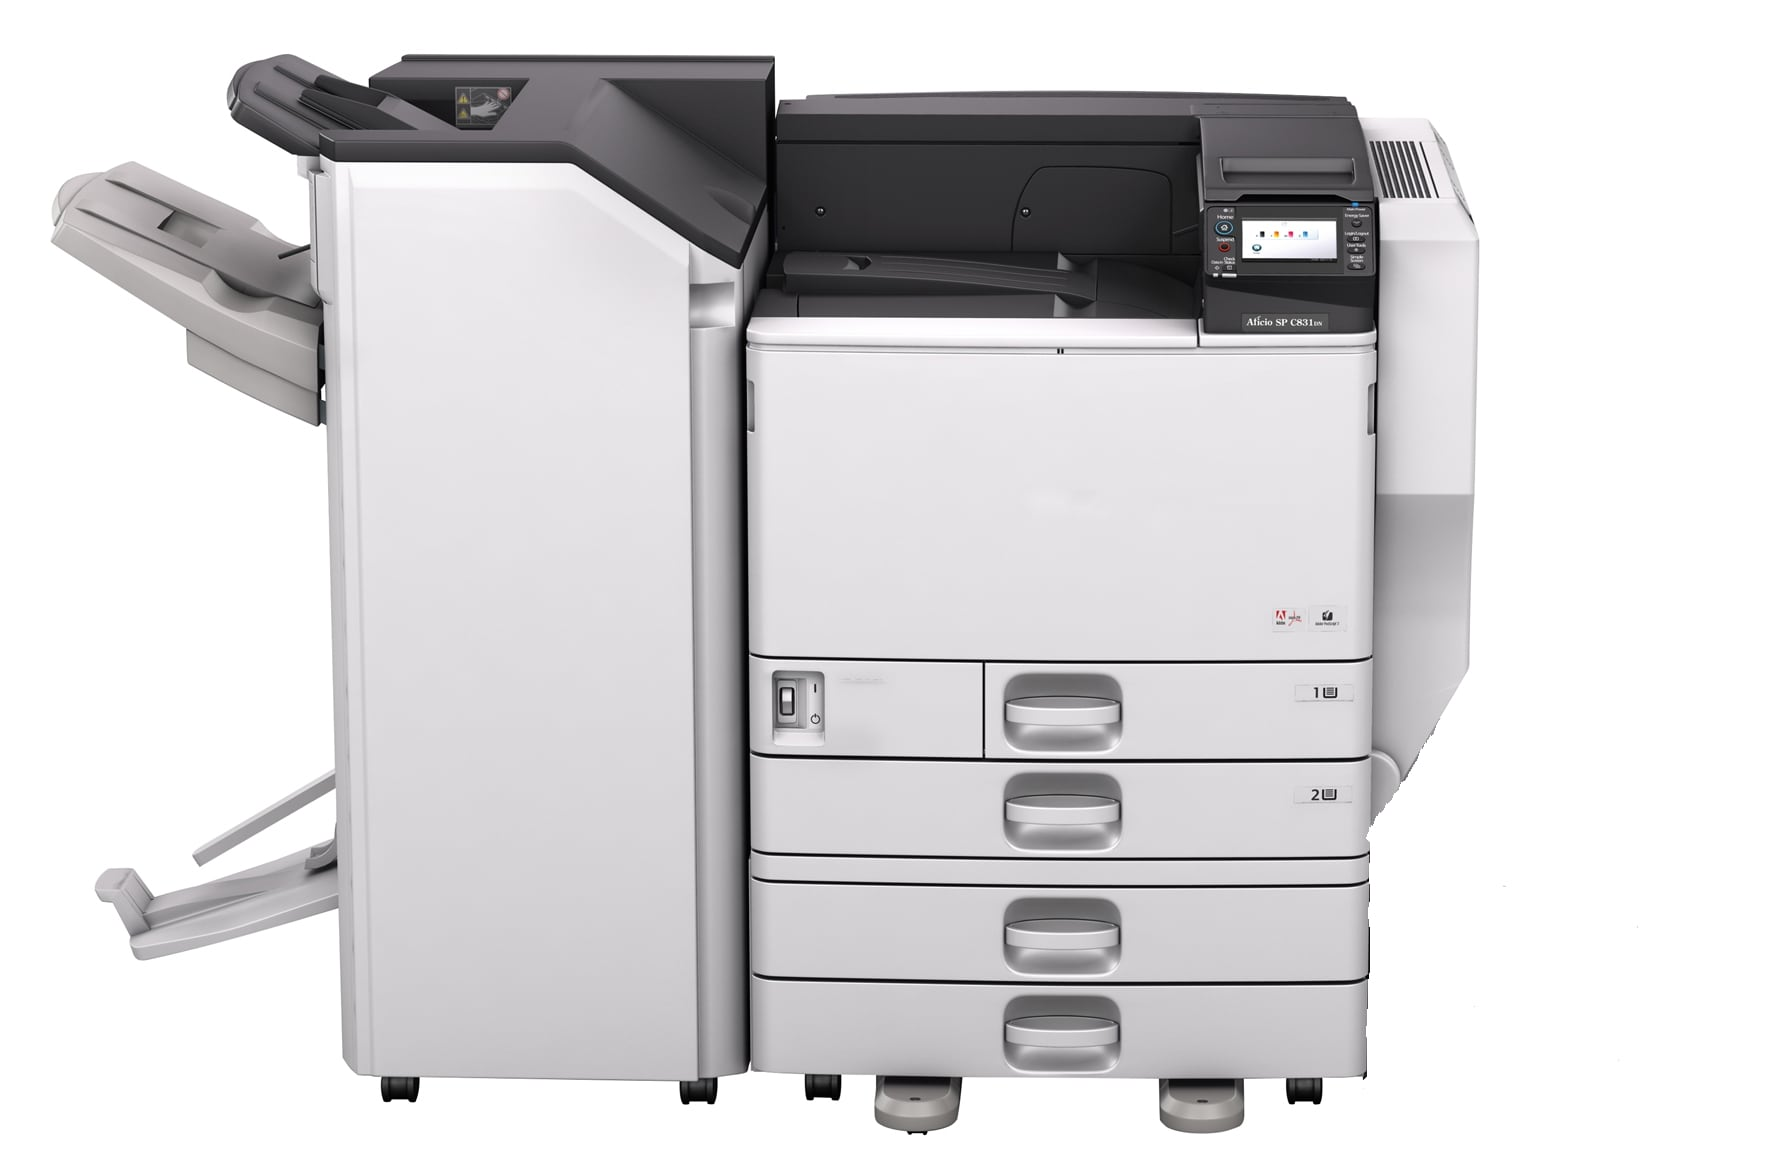 Ricoh SPC830DN A3 colour laser printer